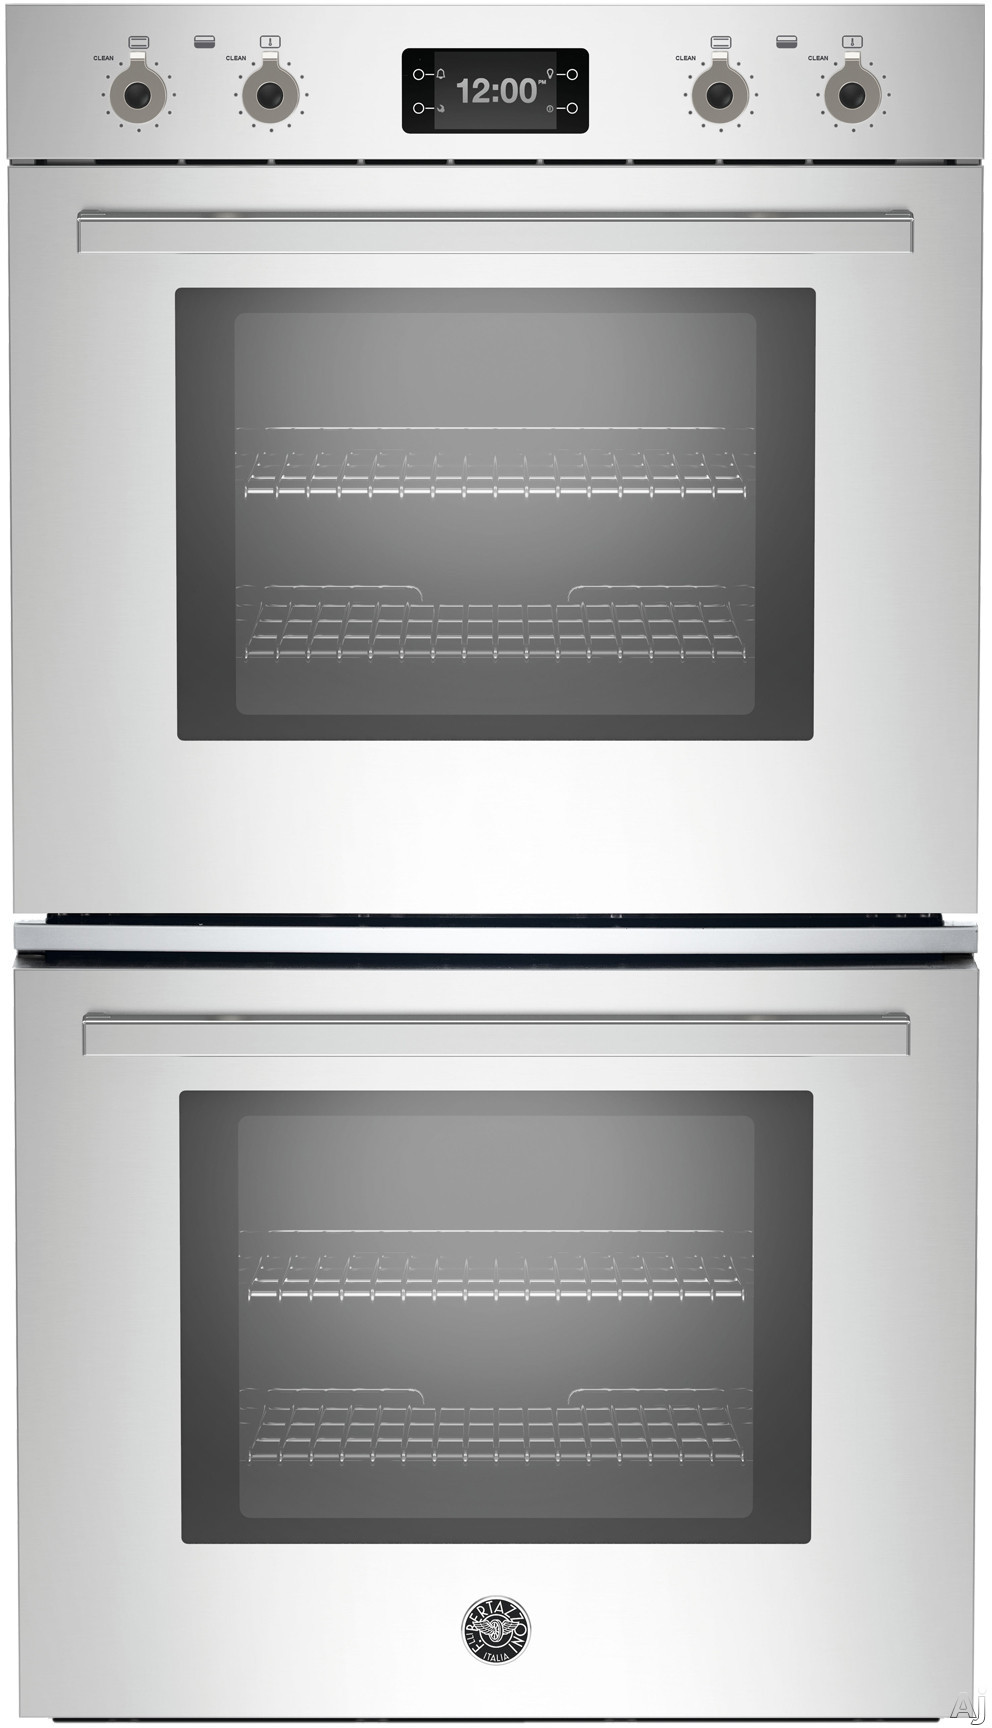 Bertazzoni Professional Series PROFD30XT 30 Inch Double Electric Wall Oven with 8.2 cu. ft. Total Capacity, Dual Diagonal Convection, Self-Cleaning, LCD Touch Interface and 33 Preset Cooking Sequences PROFD30XT